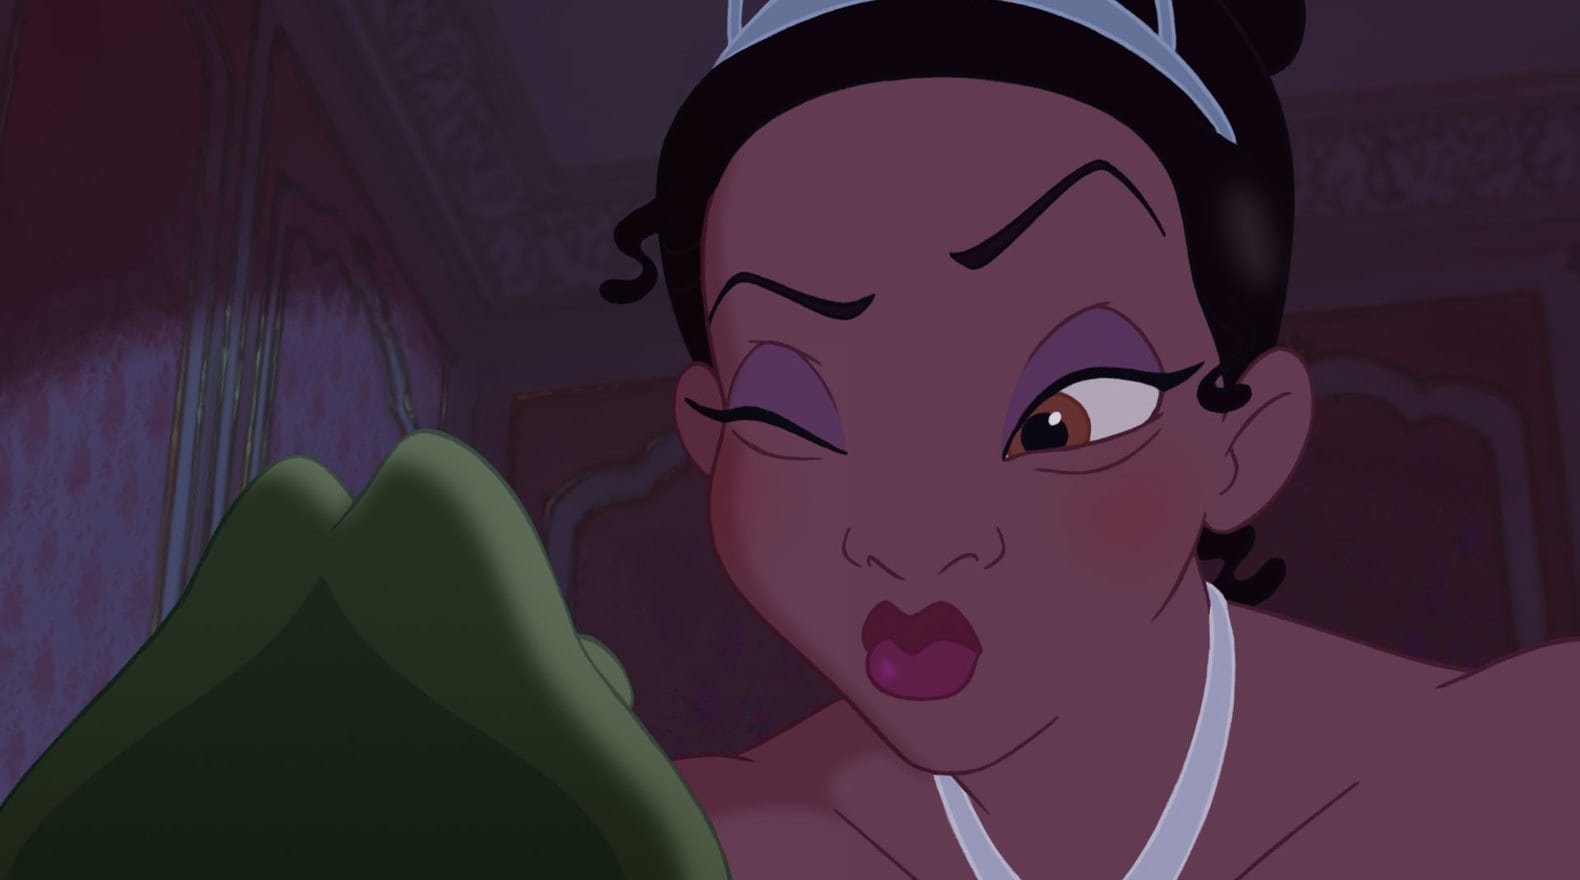 Tiana isn't sure about Naveen's kiss idea.